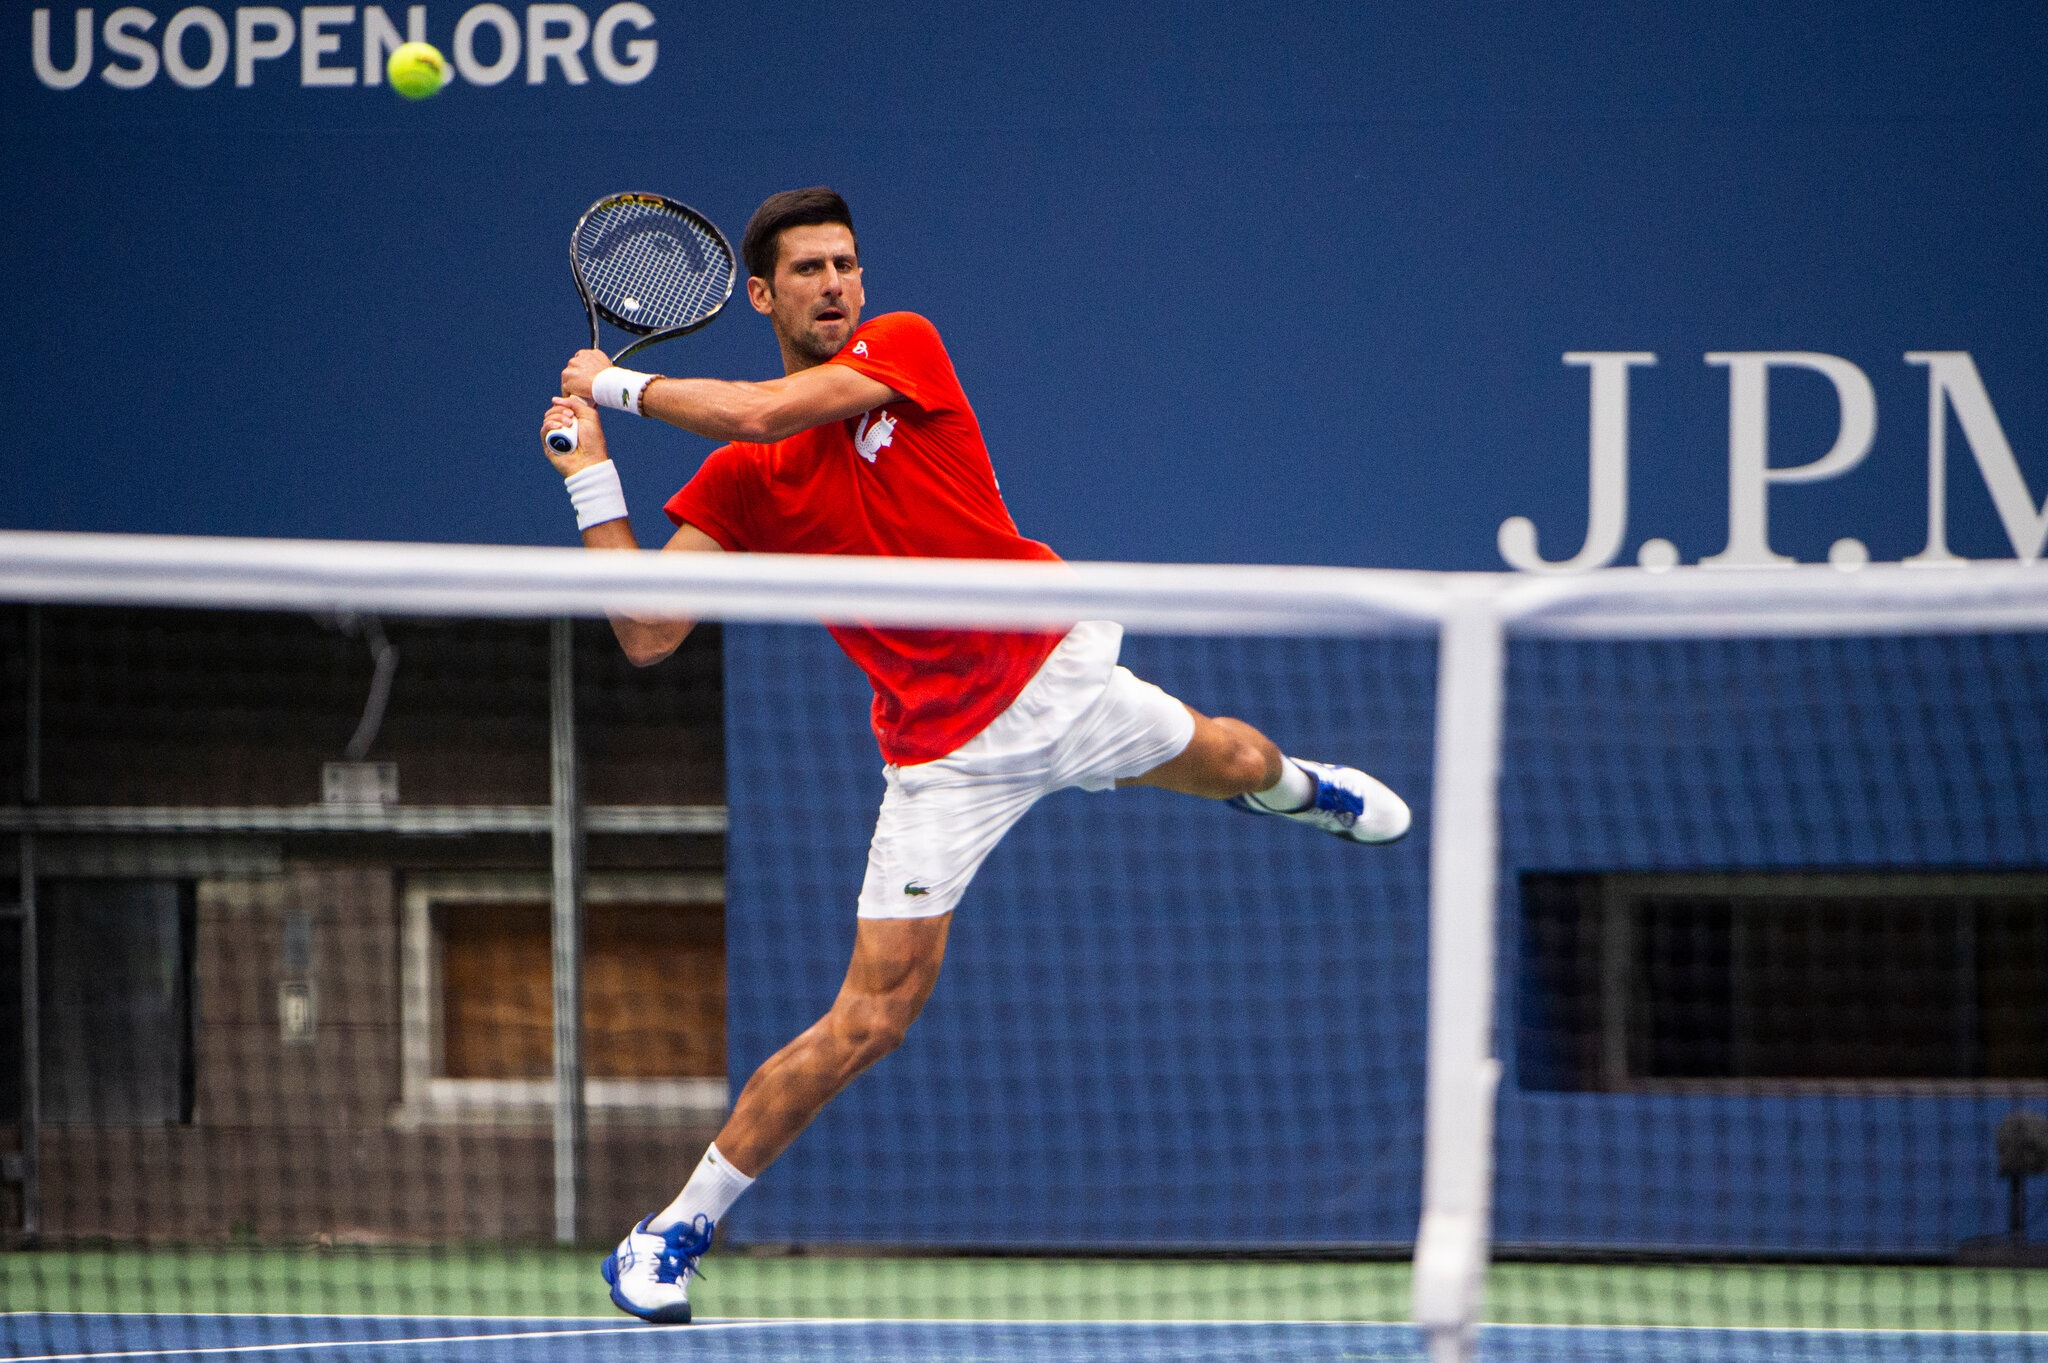 W&S Open: Djokovic advances to quarter-finals